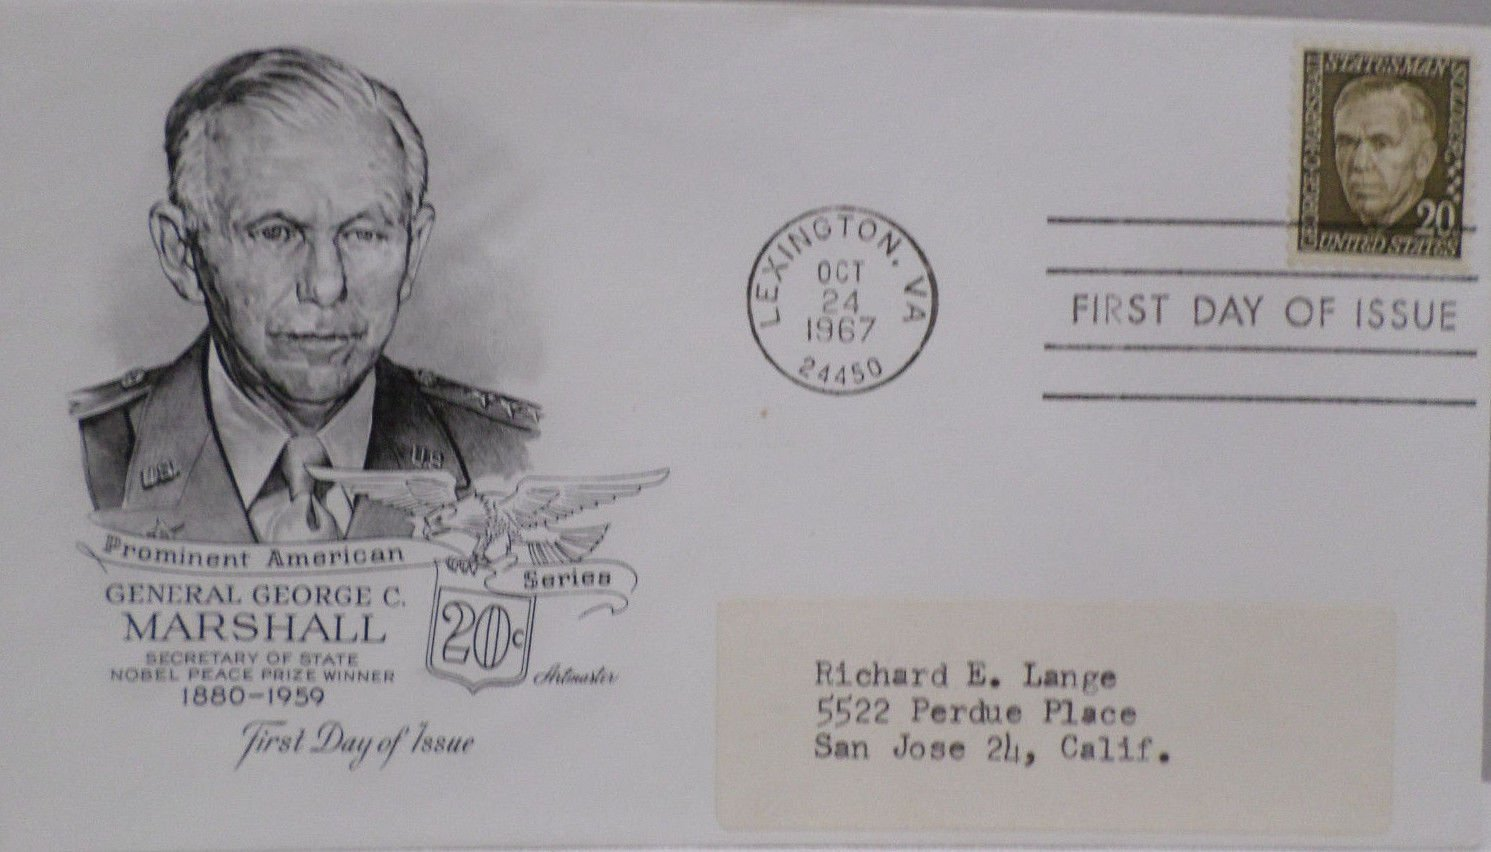 1967 First Day Cover Prominent American General George C. Marshall